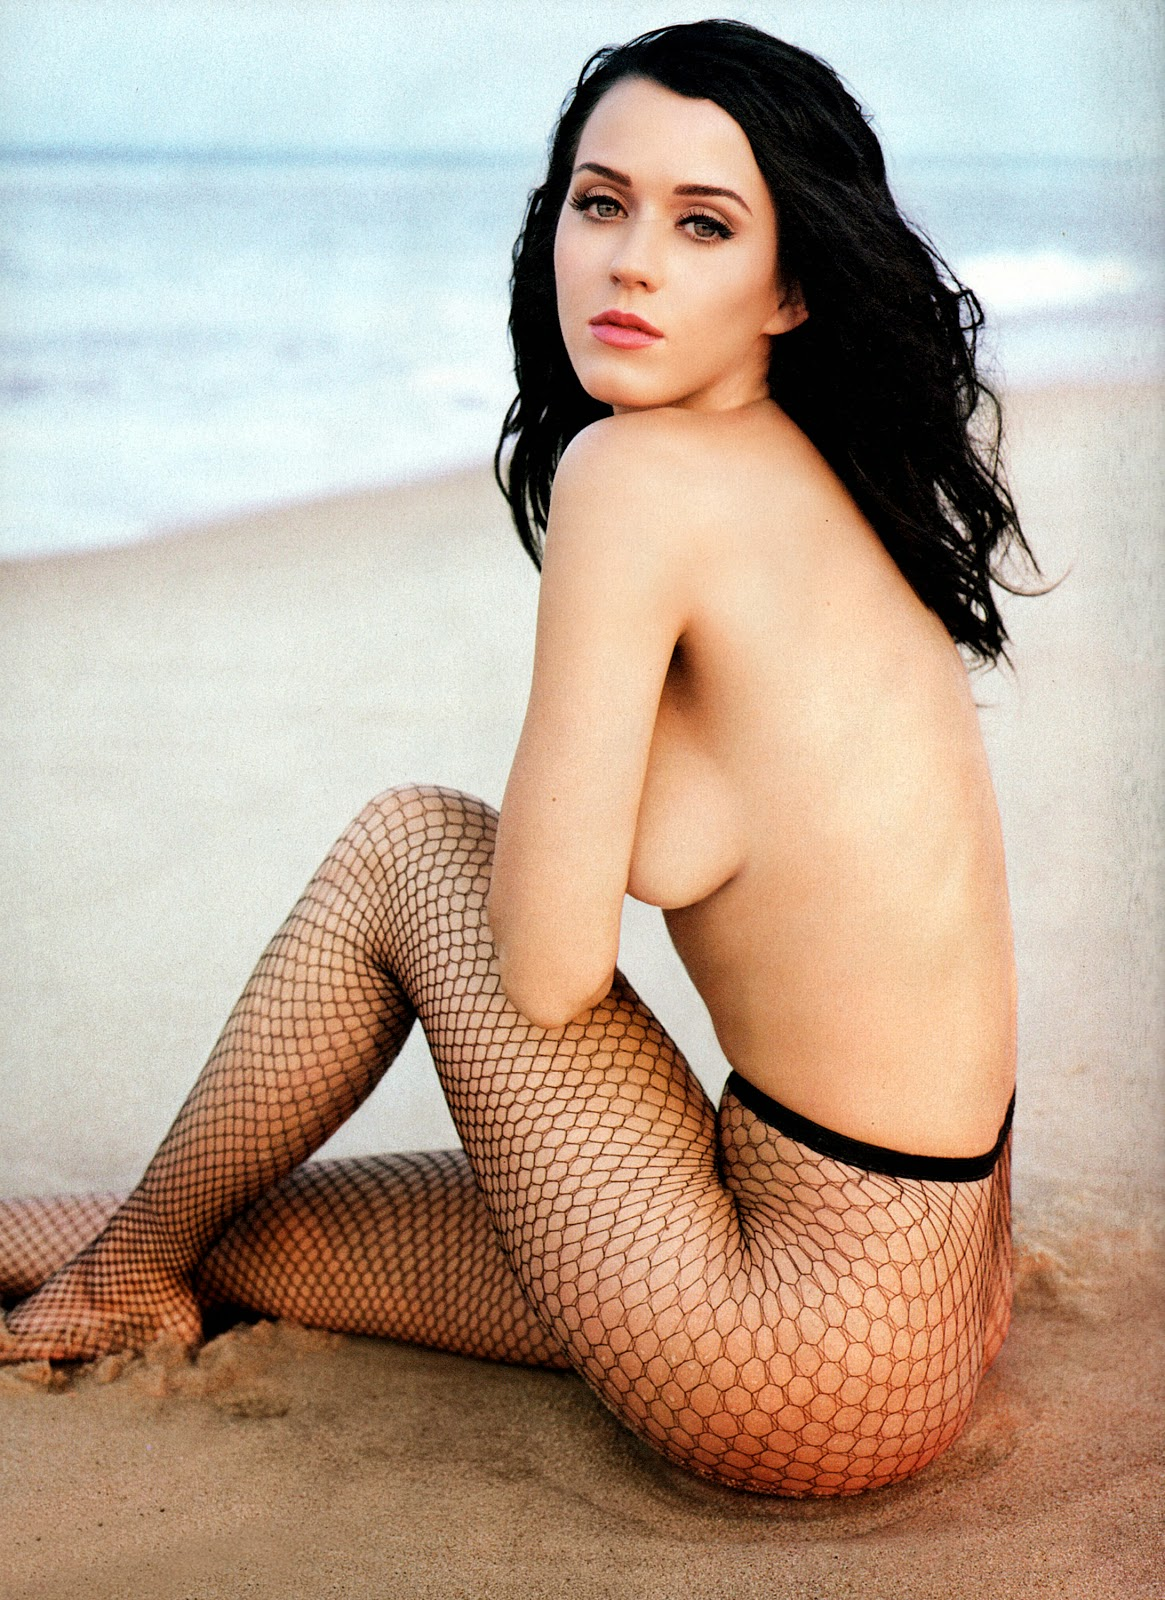 sexy-katy-perry-naked-pornstar-photos-can